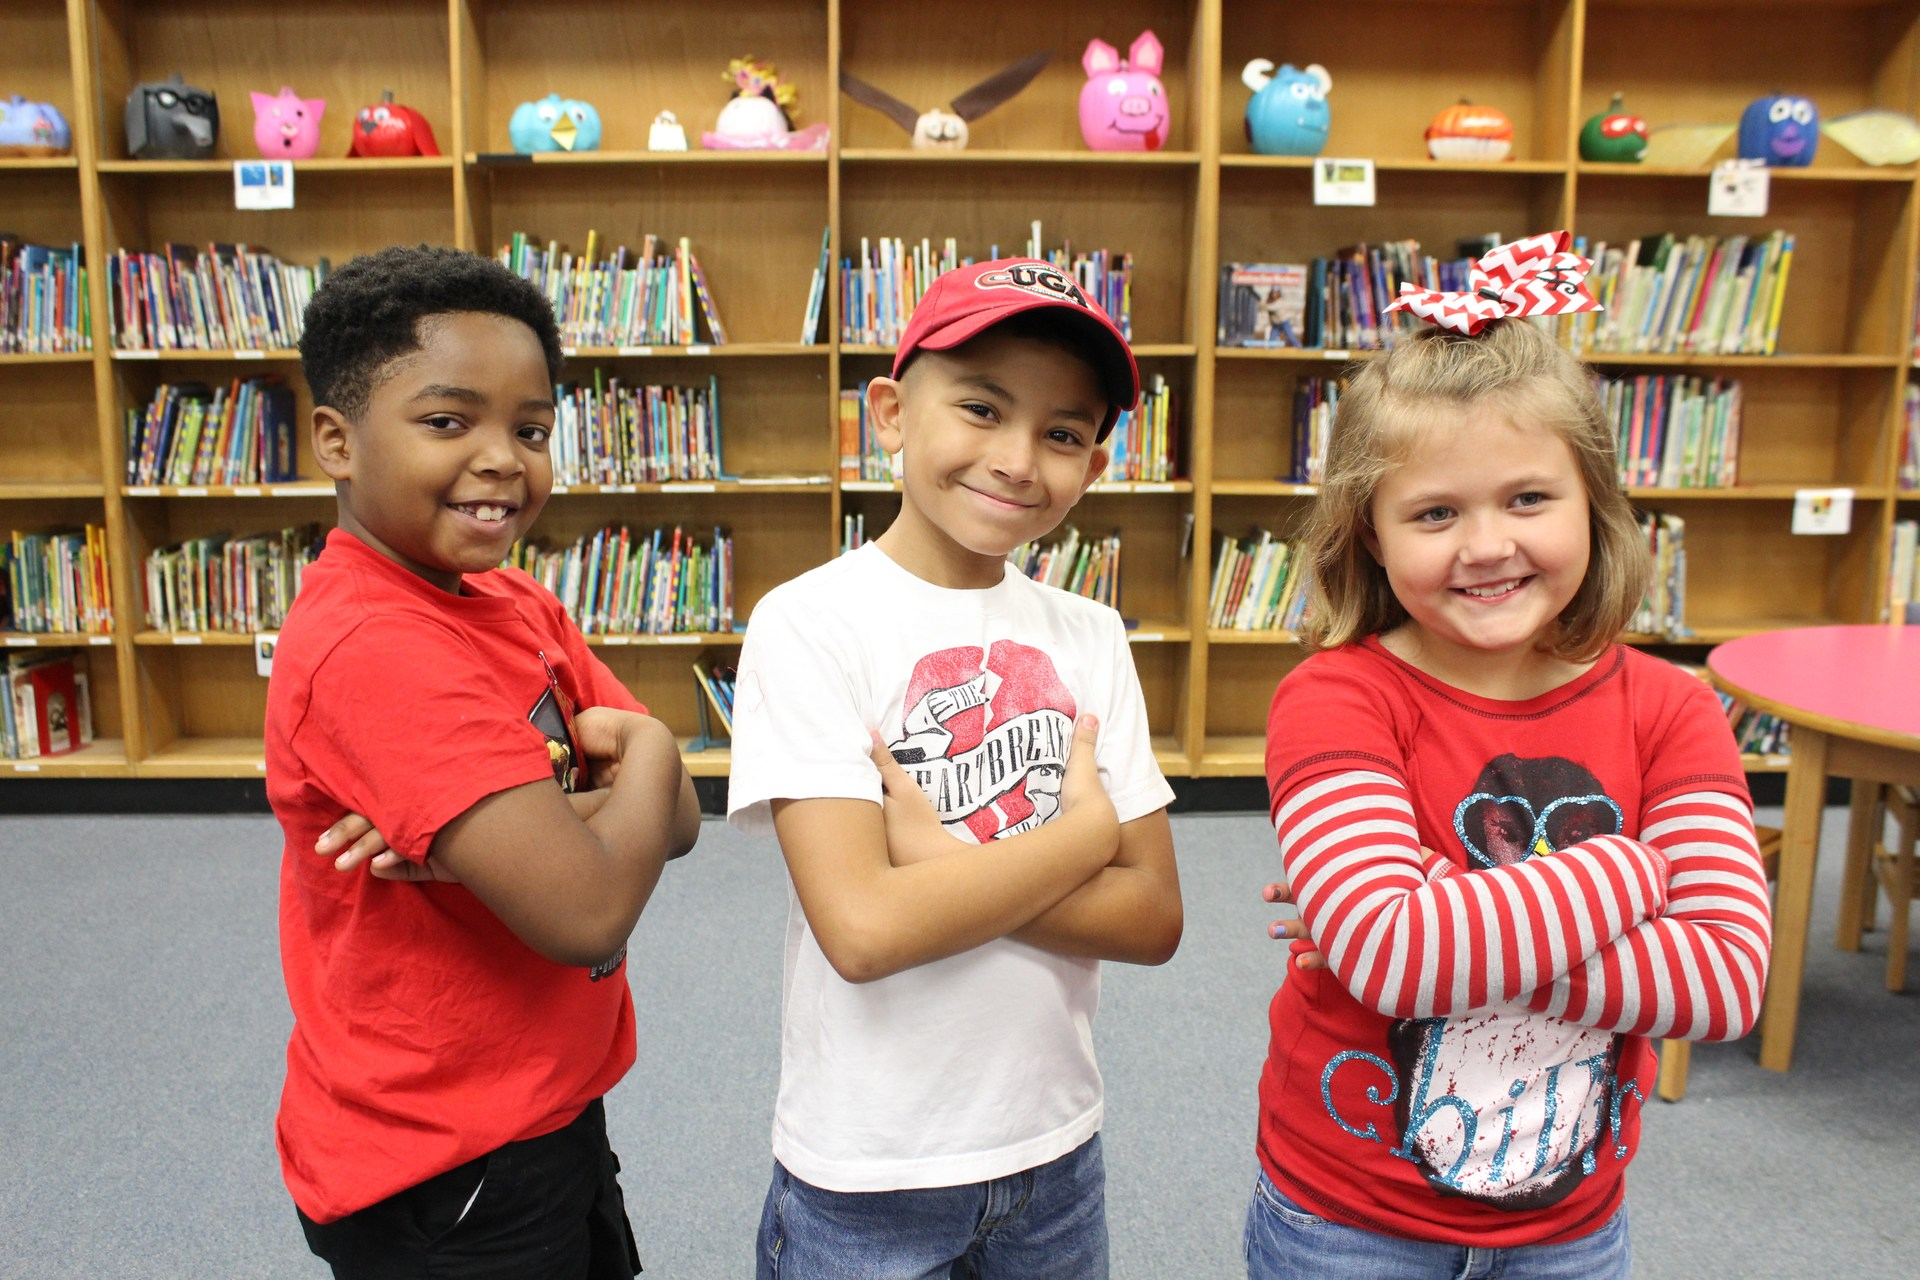 G.O. Bailey pledges to be drug free during Red Ribbon Week